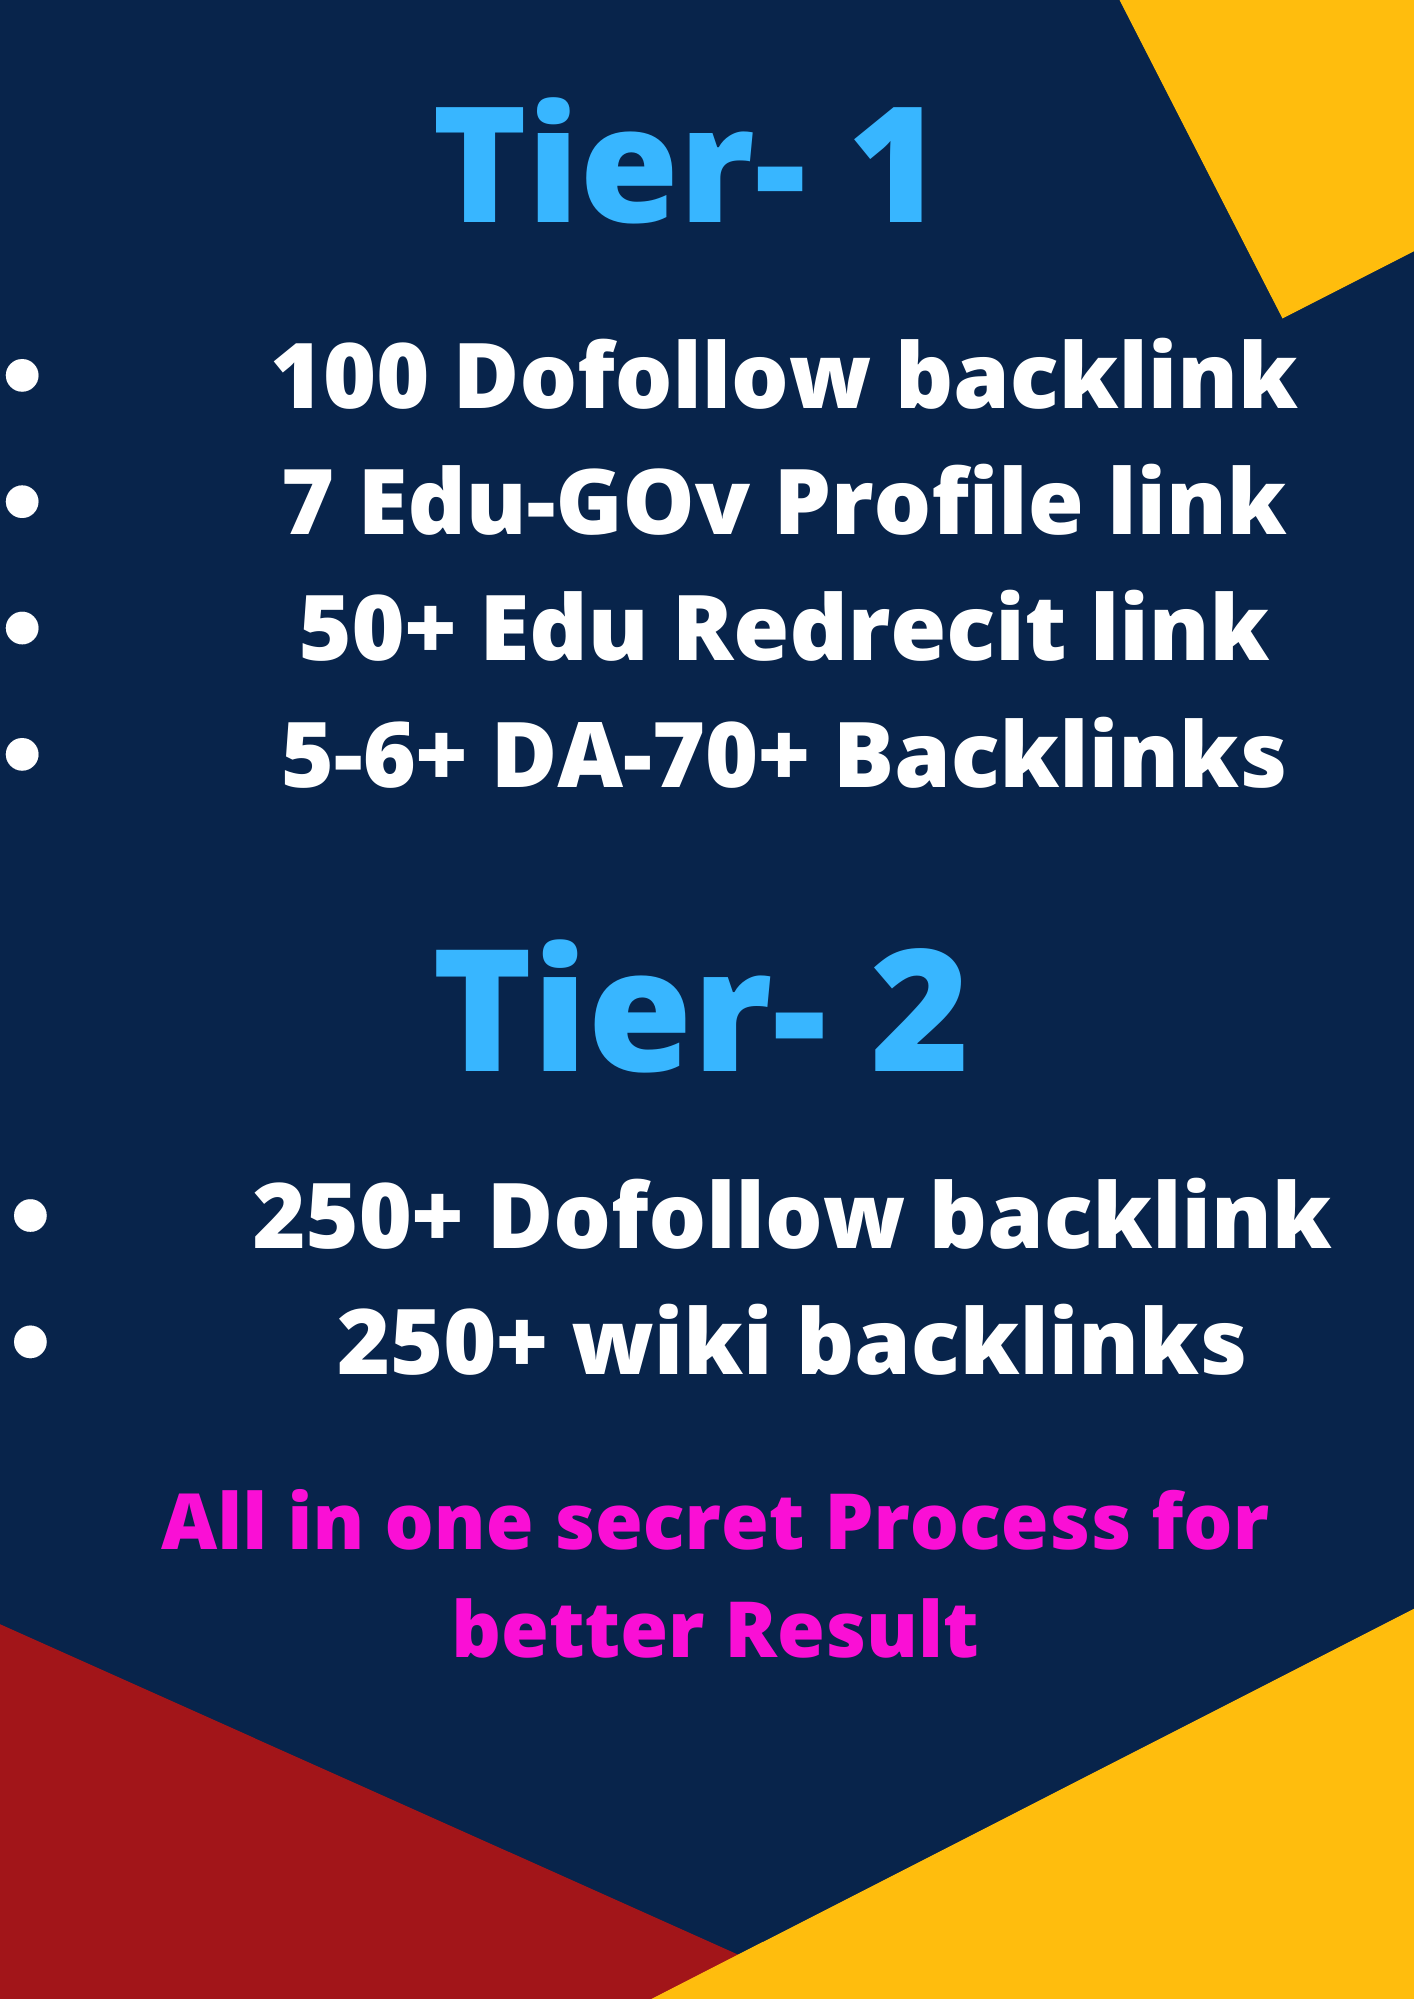 Top SEO Backlink Package For Gambling,Sbobet,Betting,Poker,Casino, Adult Sites too